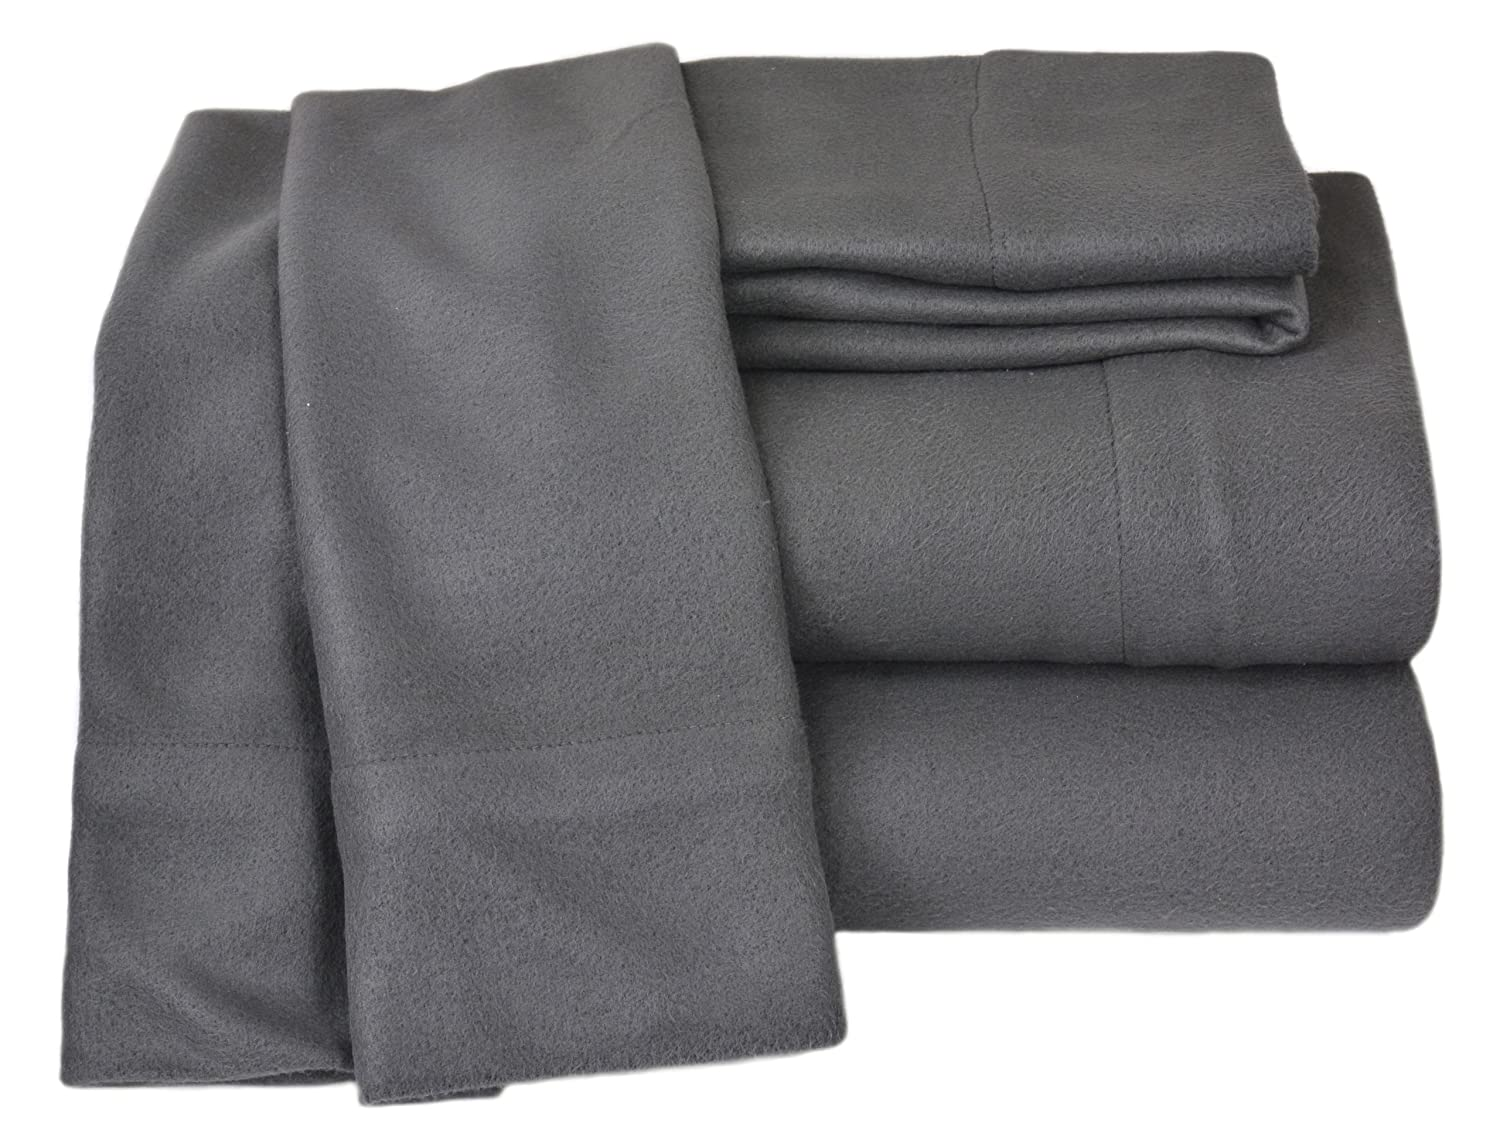 Elite Home Winter Nights Fleece Extra Plush 4-Piece Sheet Set